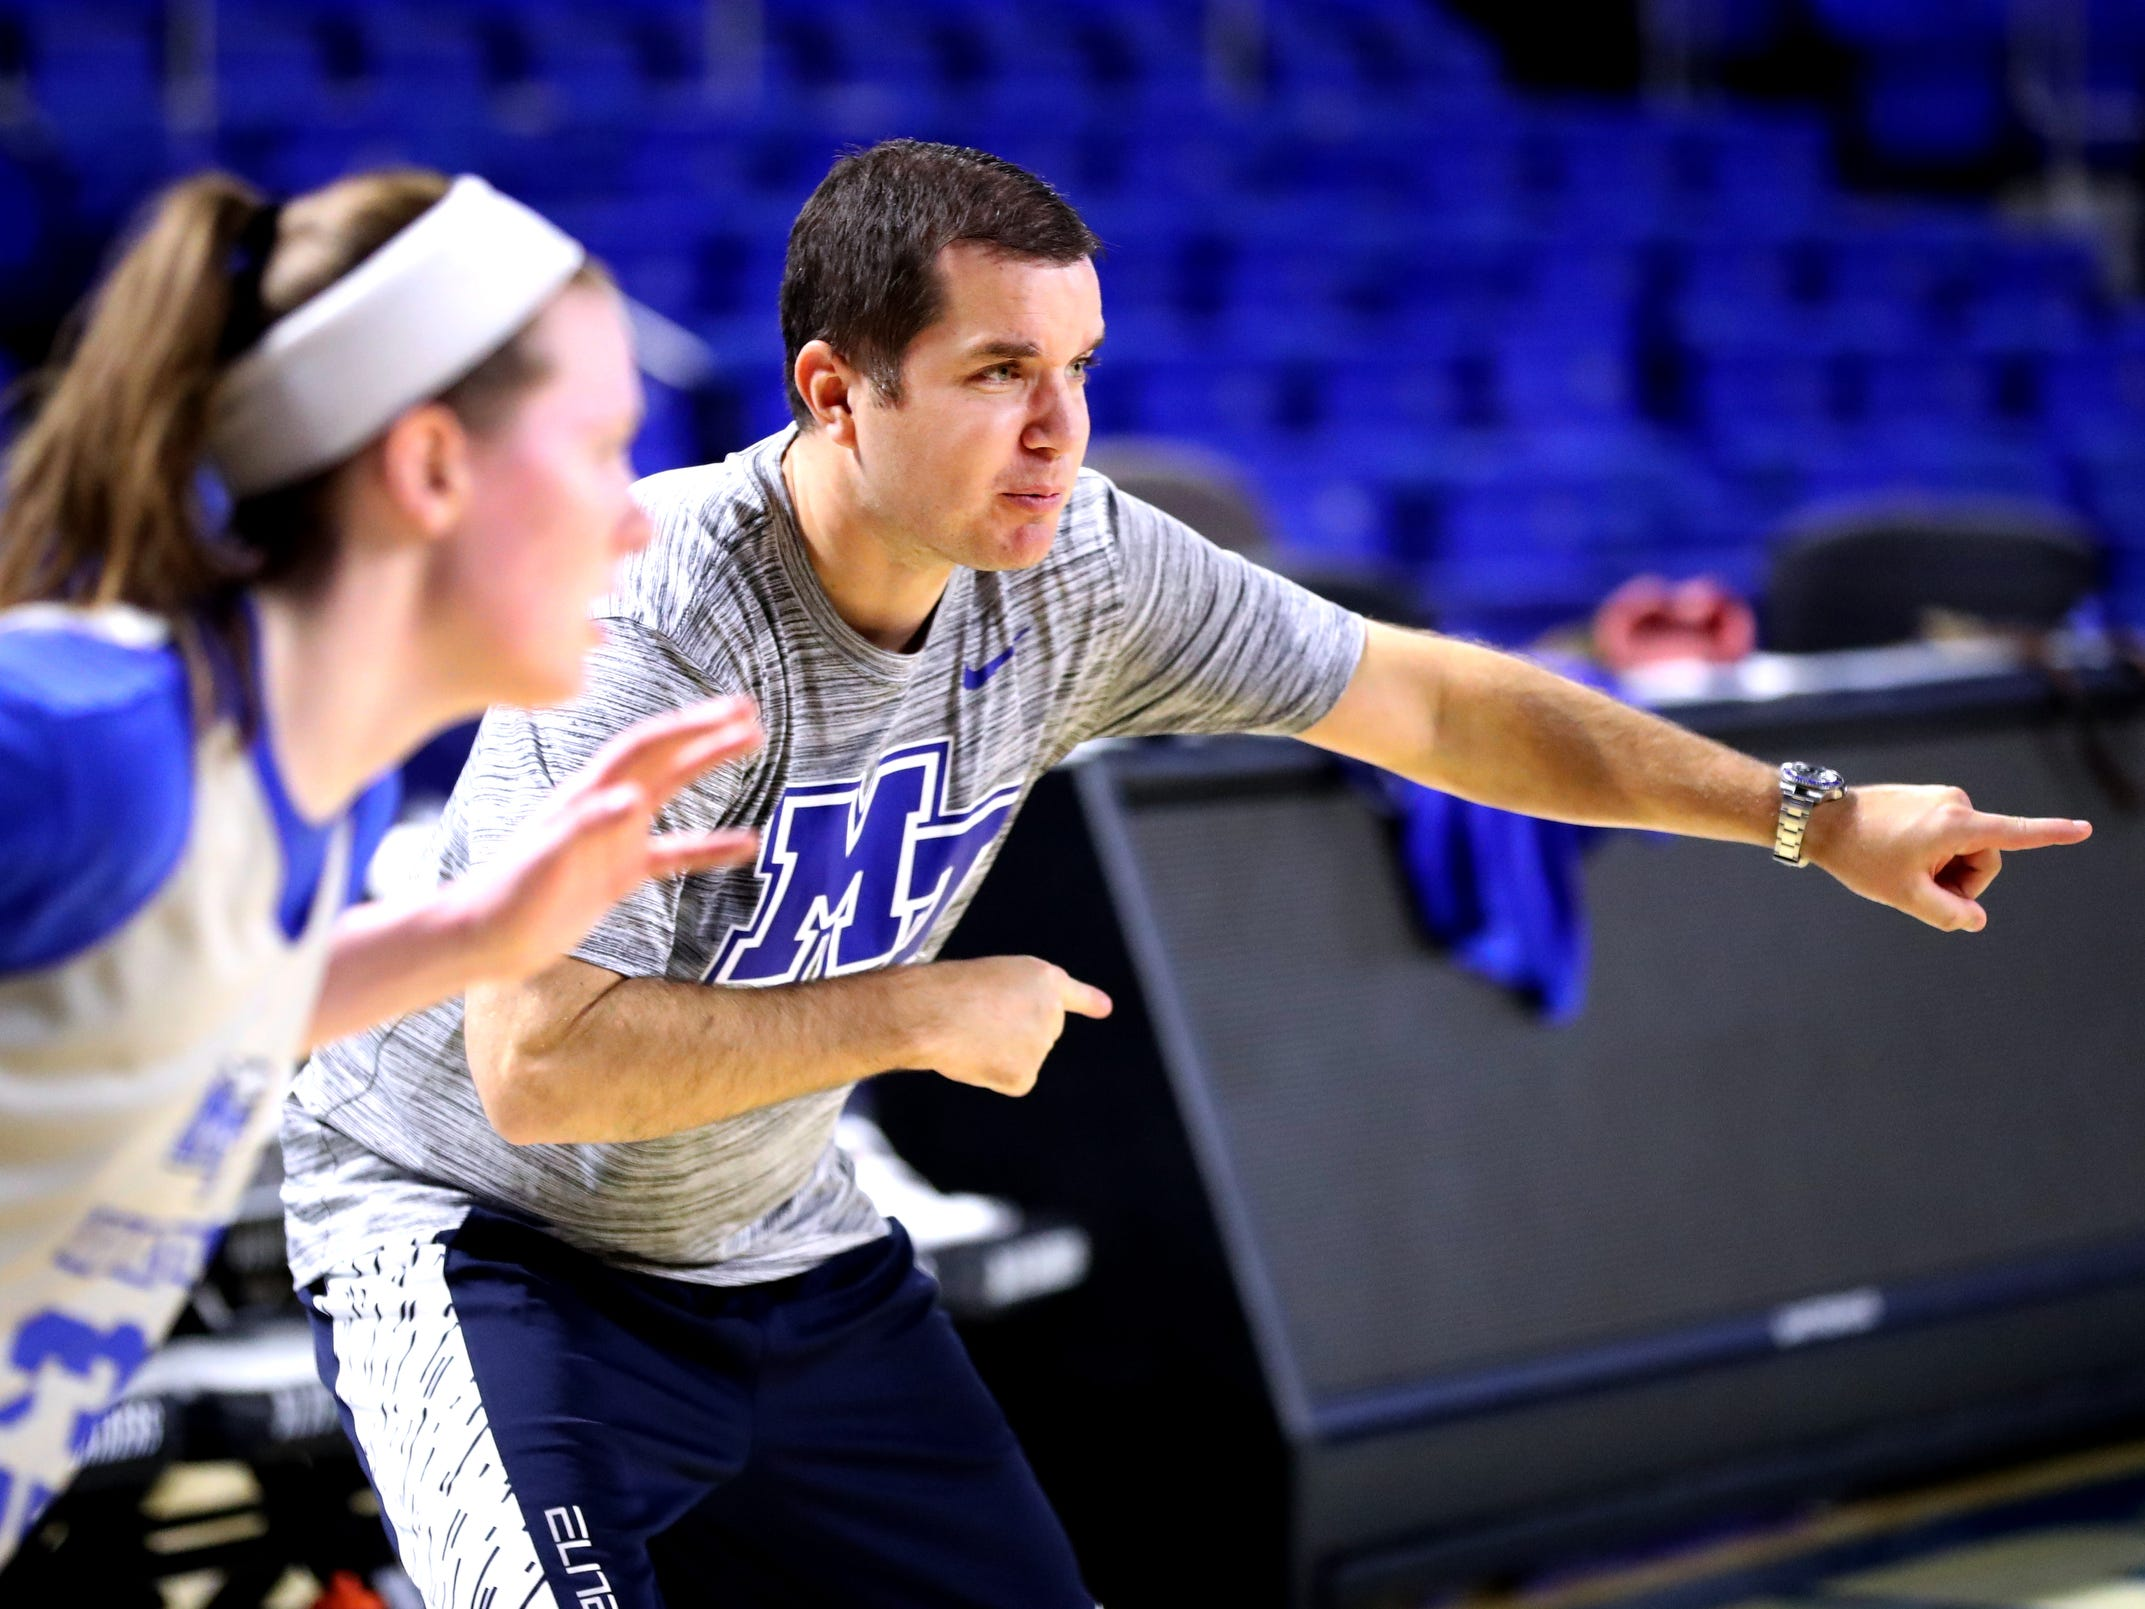 MTSU women's assistant basketball coach Matt Insell works with players during practice at Murphy Center on Monday, Nov.. 5, 2018.